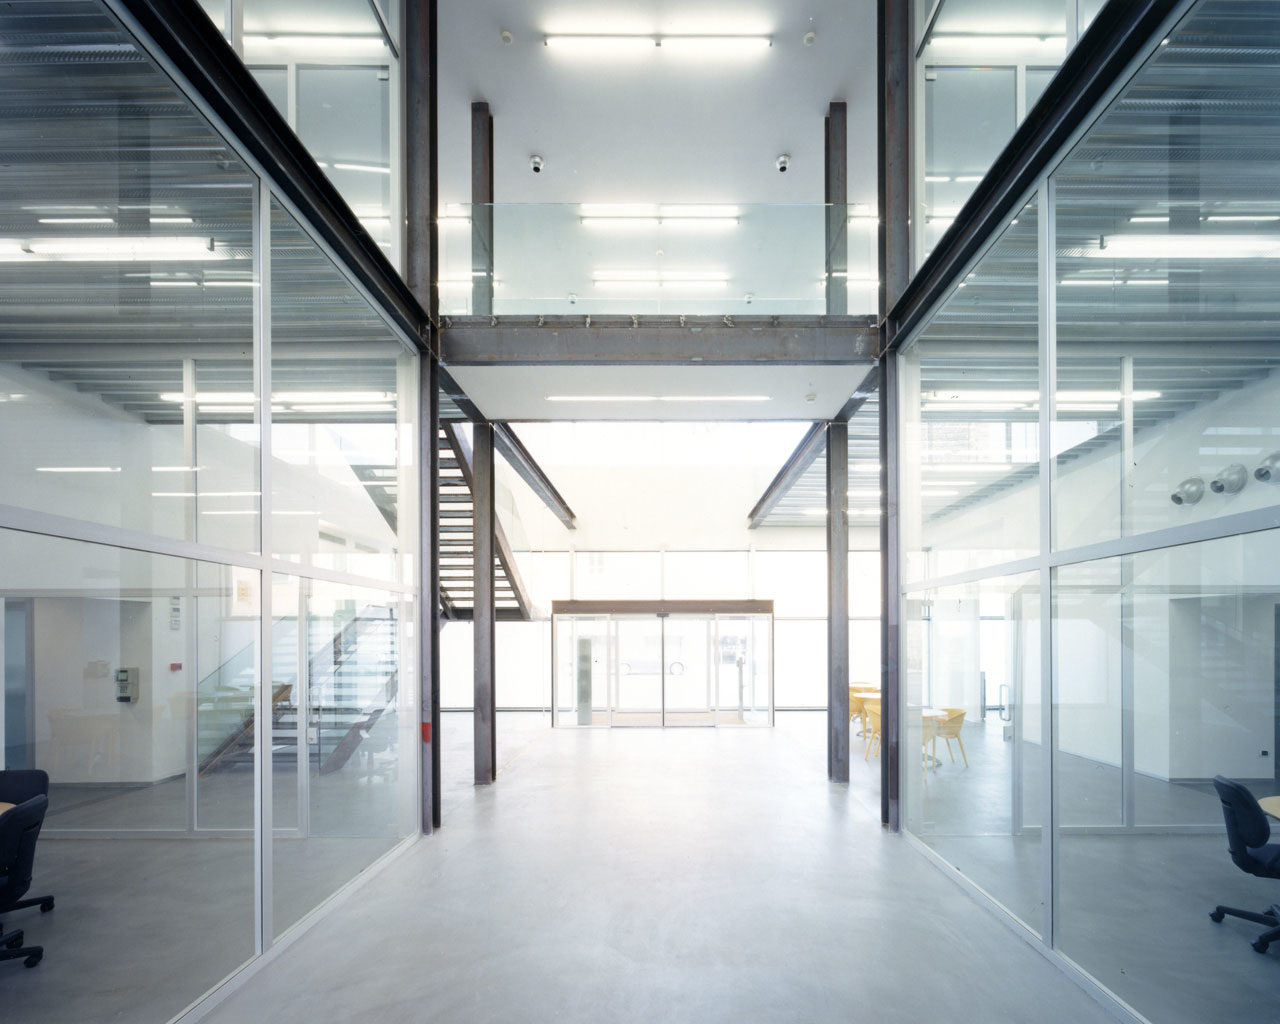 Offices in an existing building, Dalmine, Italy